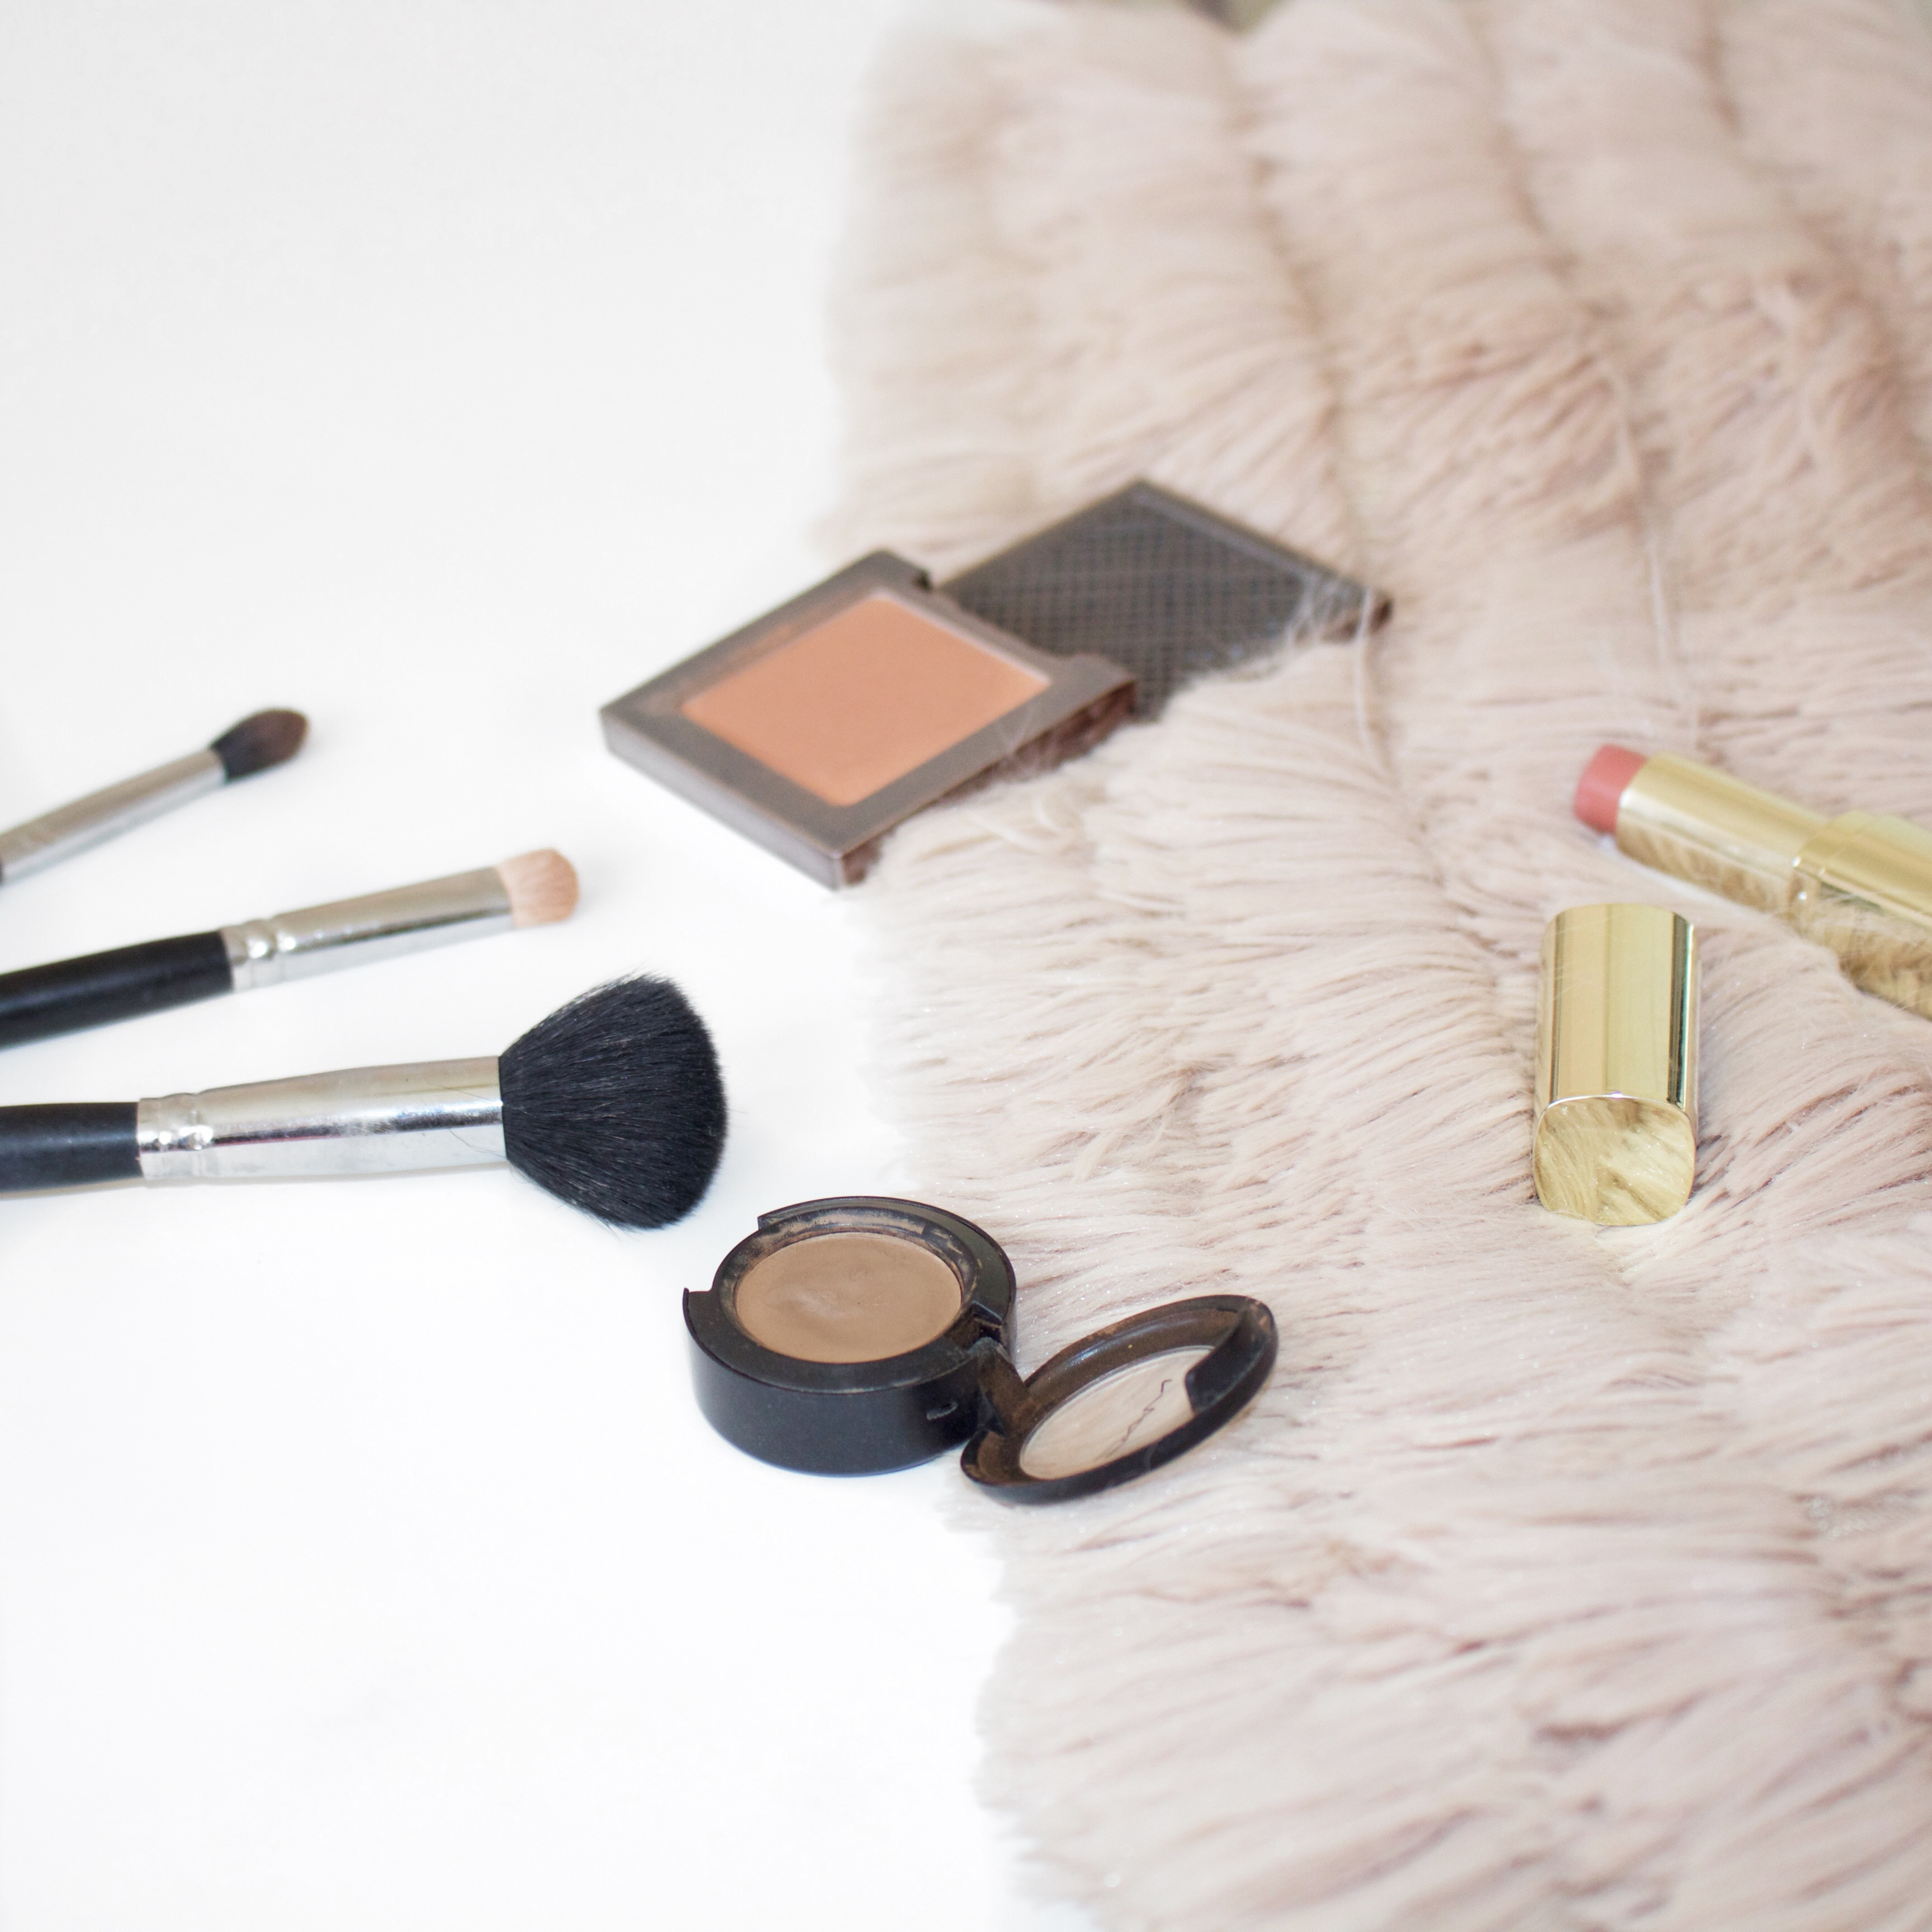 Fall Beauty Products - My Styled Life